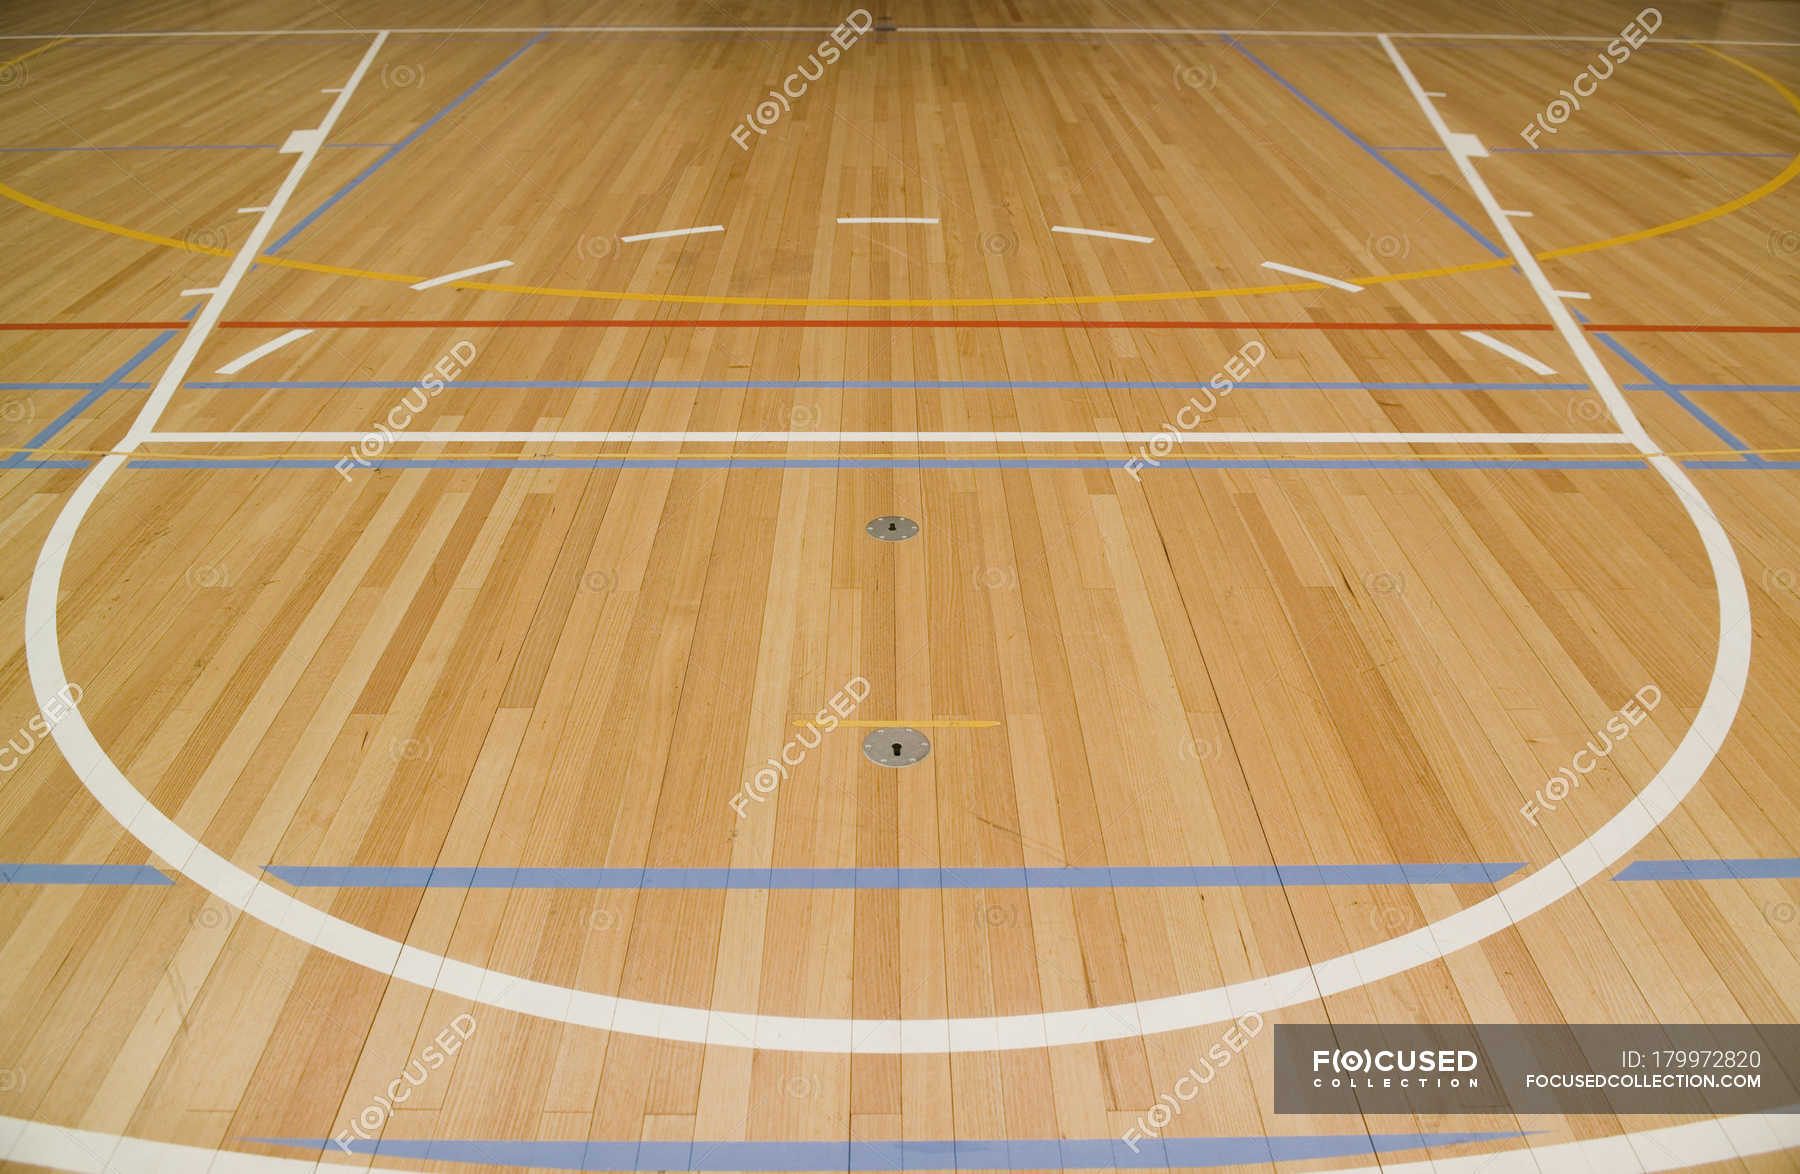 woodfloordoctor basketball com chemically floor strip floors how wood l to